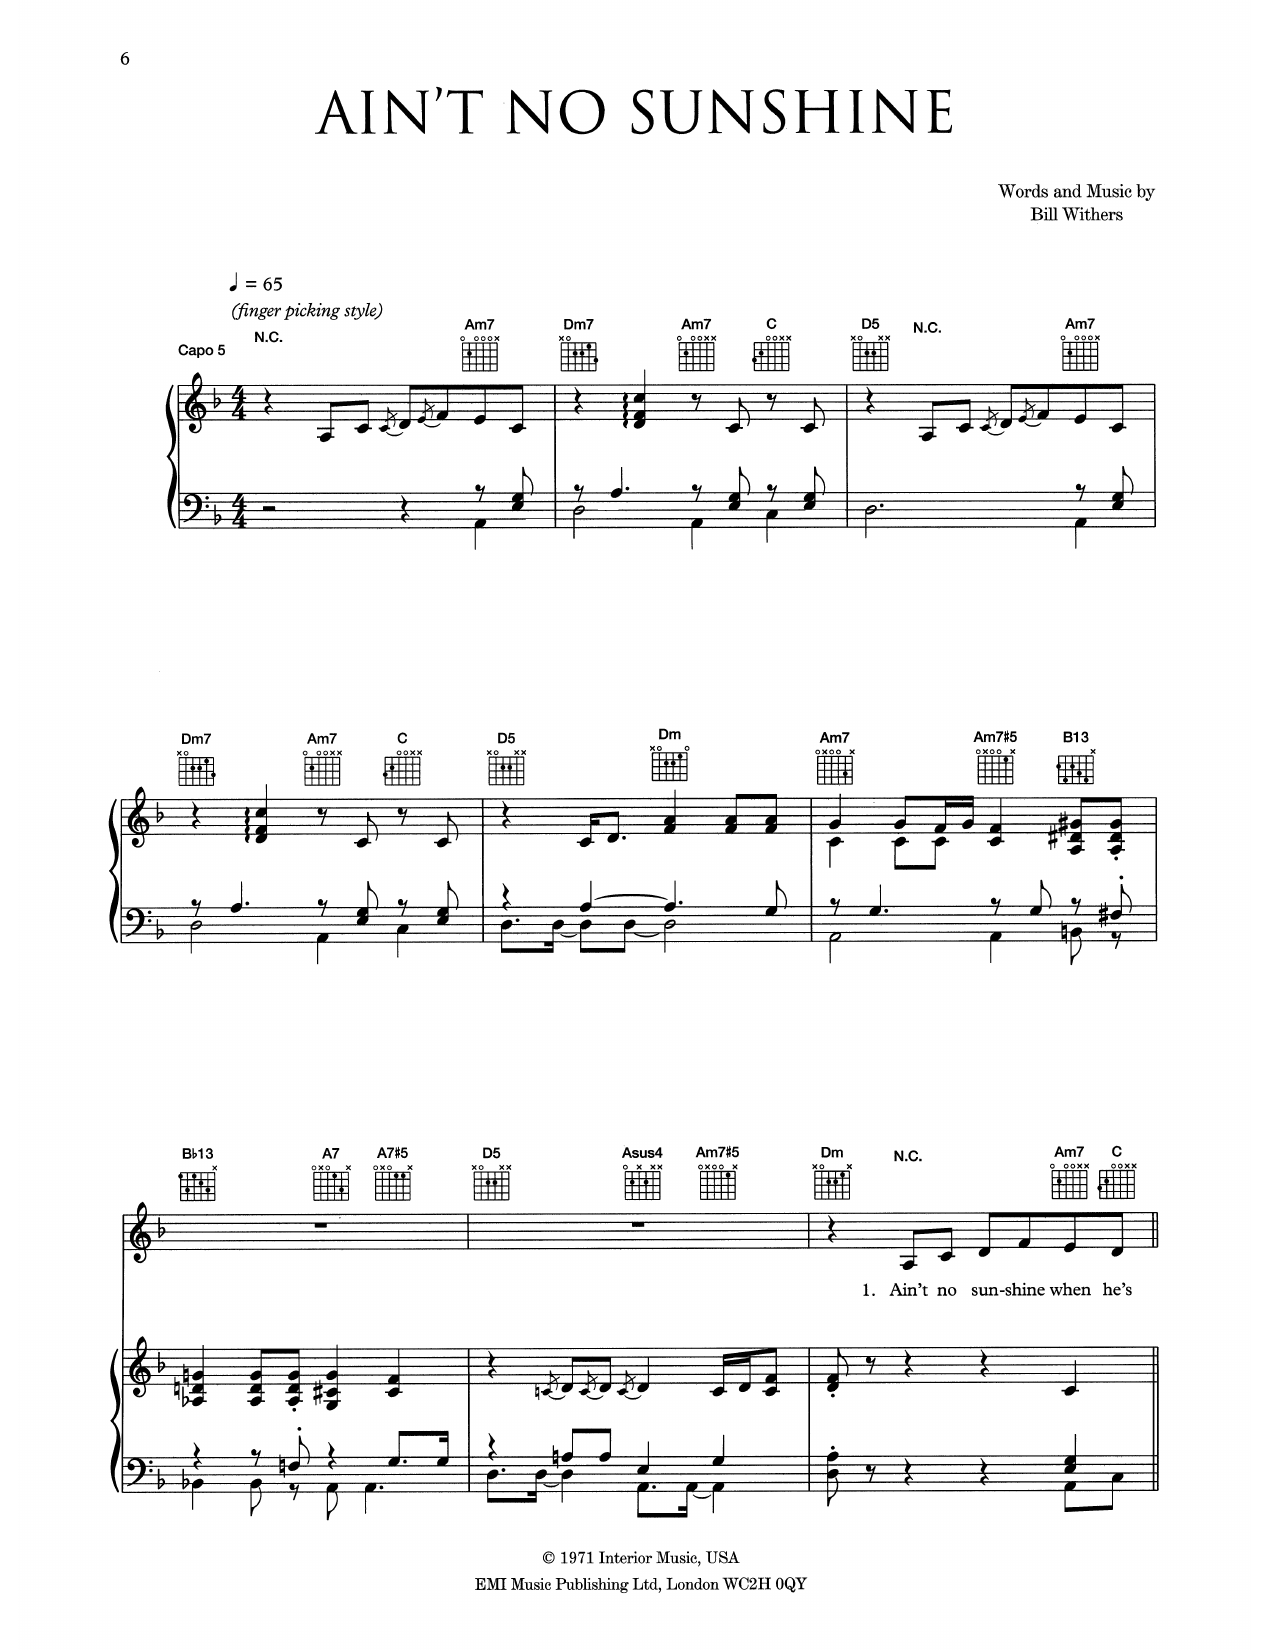 Eva Cassidy Ain T No Sunshine Sheet Music Pdf Notes Chords Pop Score Piano Vocal Guitar Right Hand Melody Download Printable Sku 445285 0 ratings0% found this document useful (0 votes). eva cassidy ain t no sunshine sheet music notes chords download printable piano vocal guitar right hand melody pdf score sku 445285